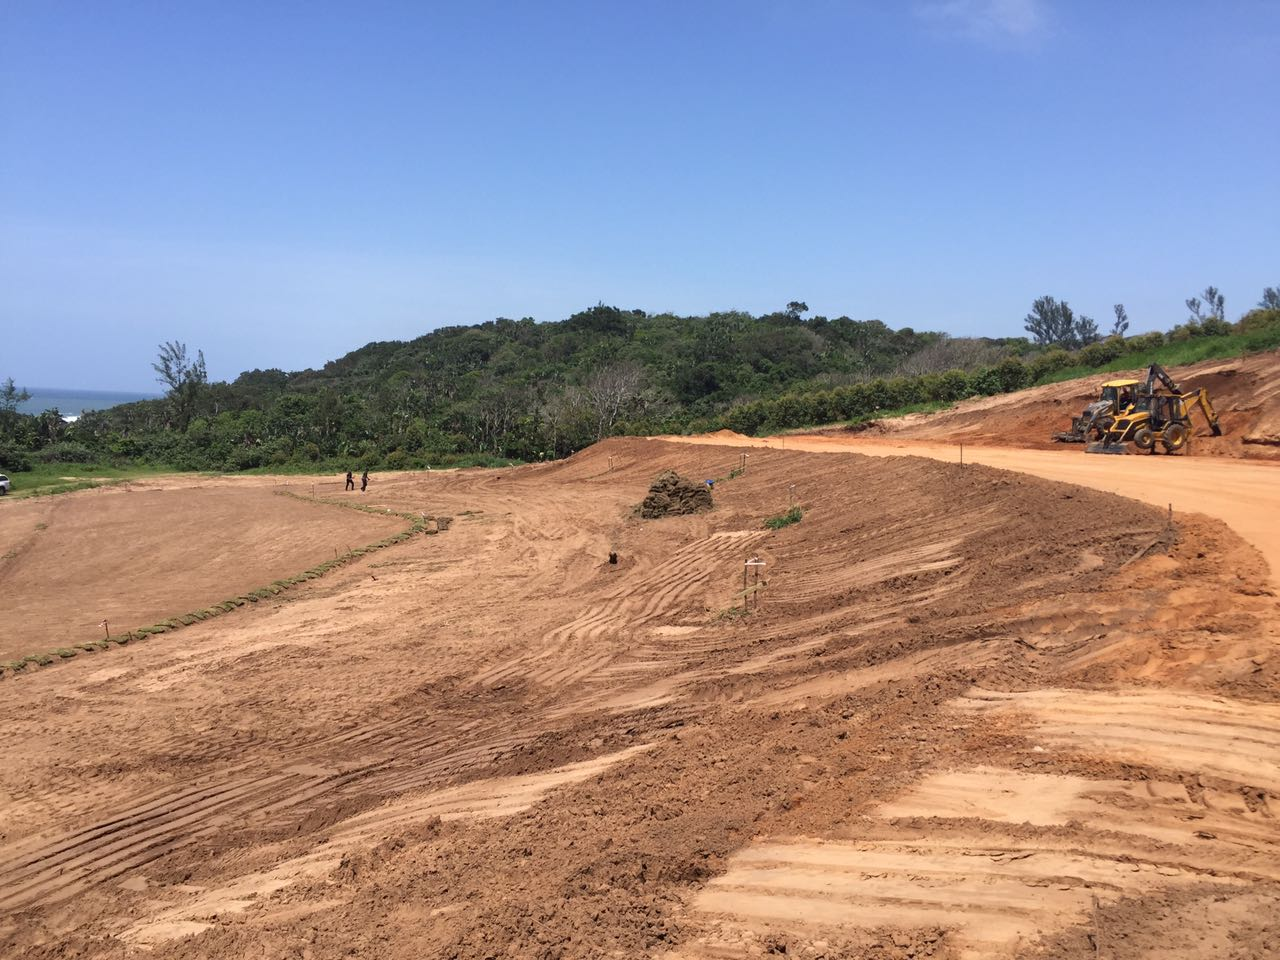 Amphitheater progress at Blythedale Coastal Resort